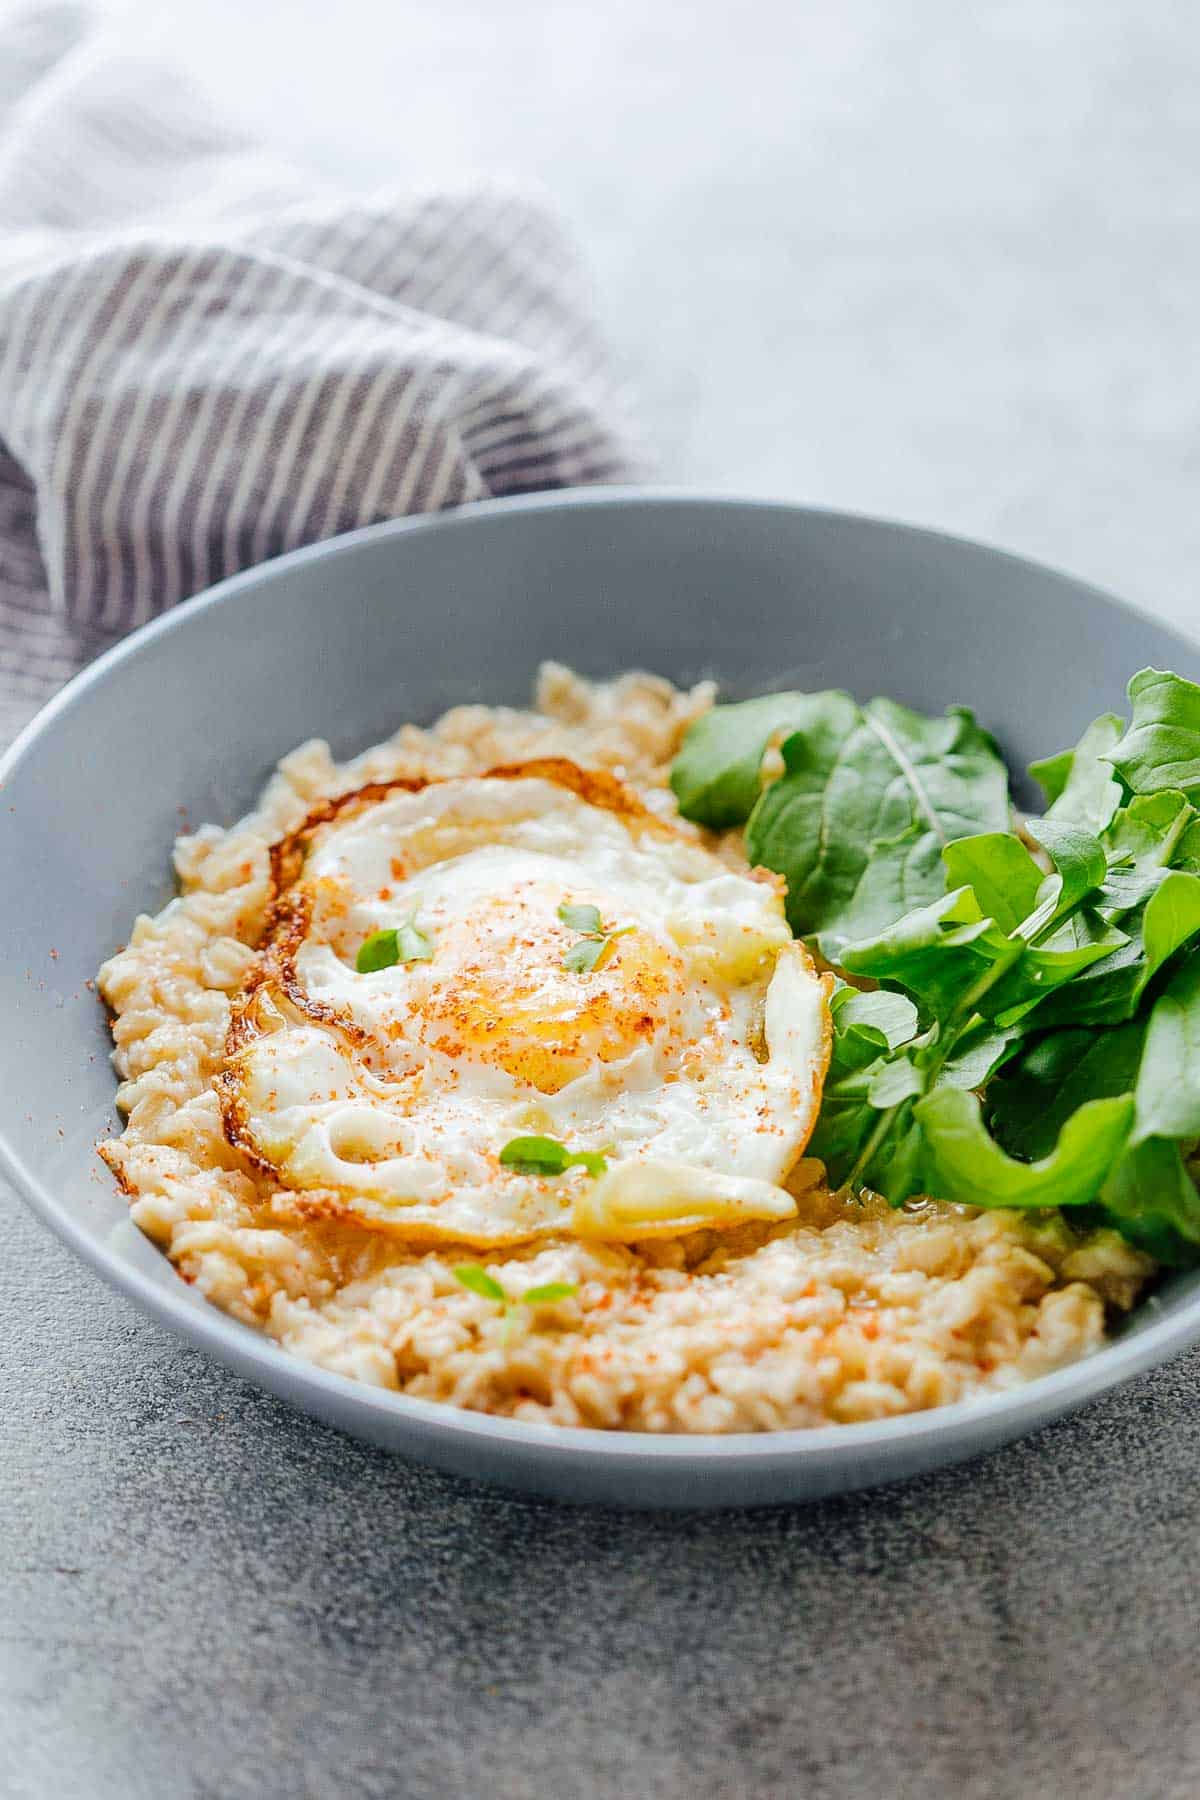 Savory Garlic Oats with Masala Fried Egg in a bowl with mixed lettuce greens